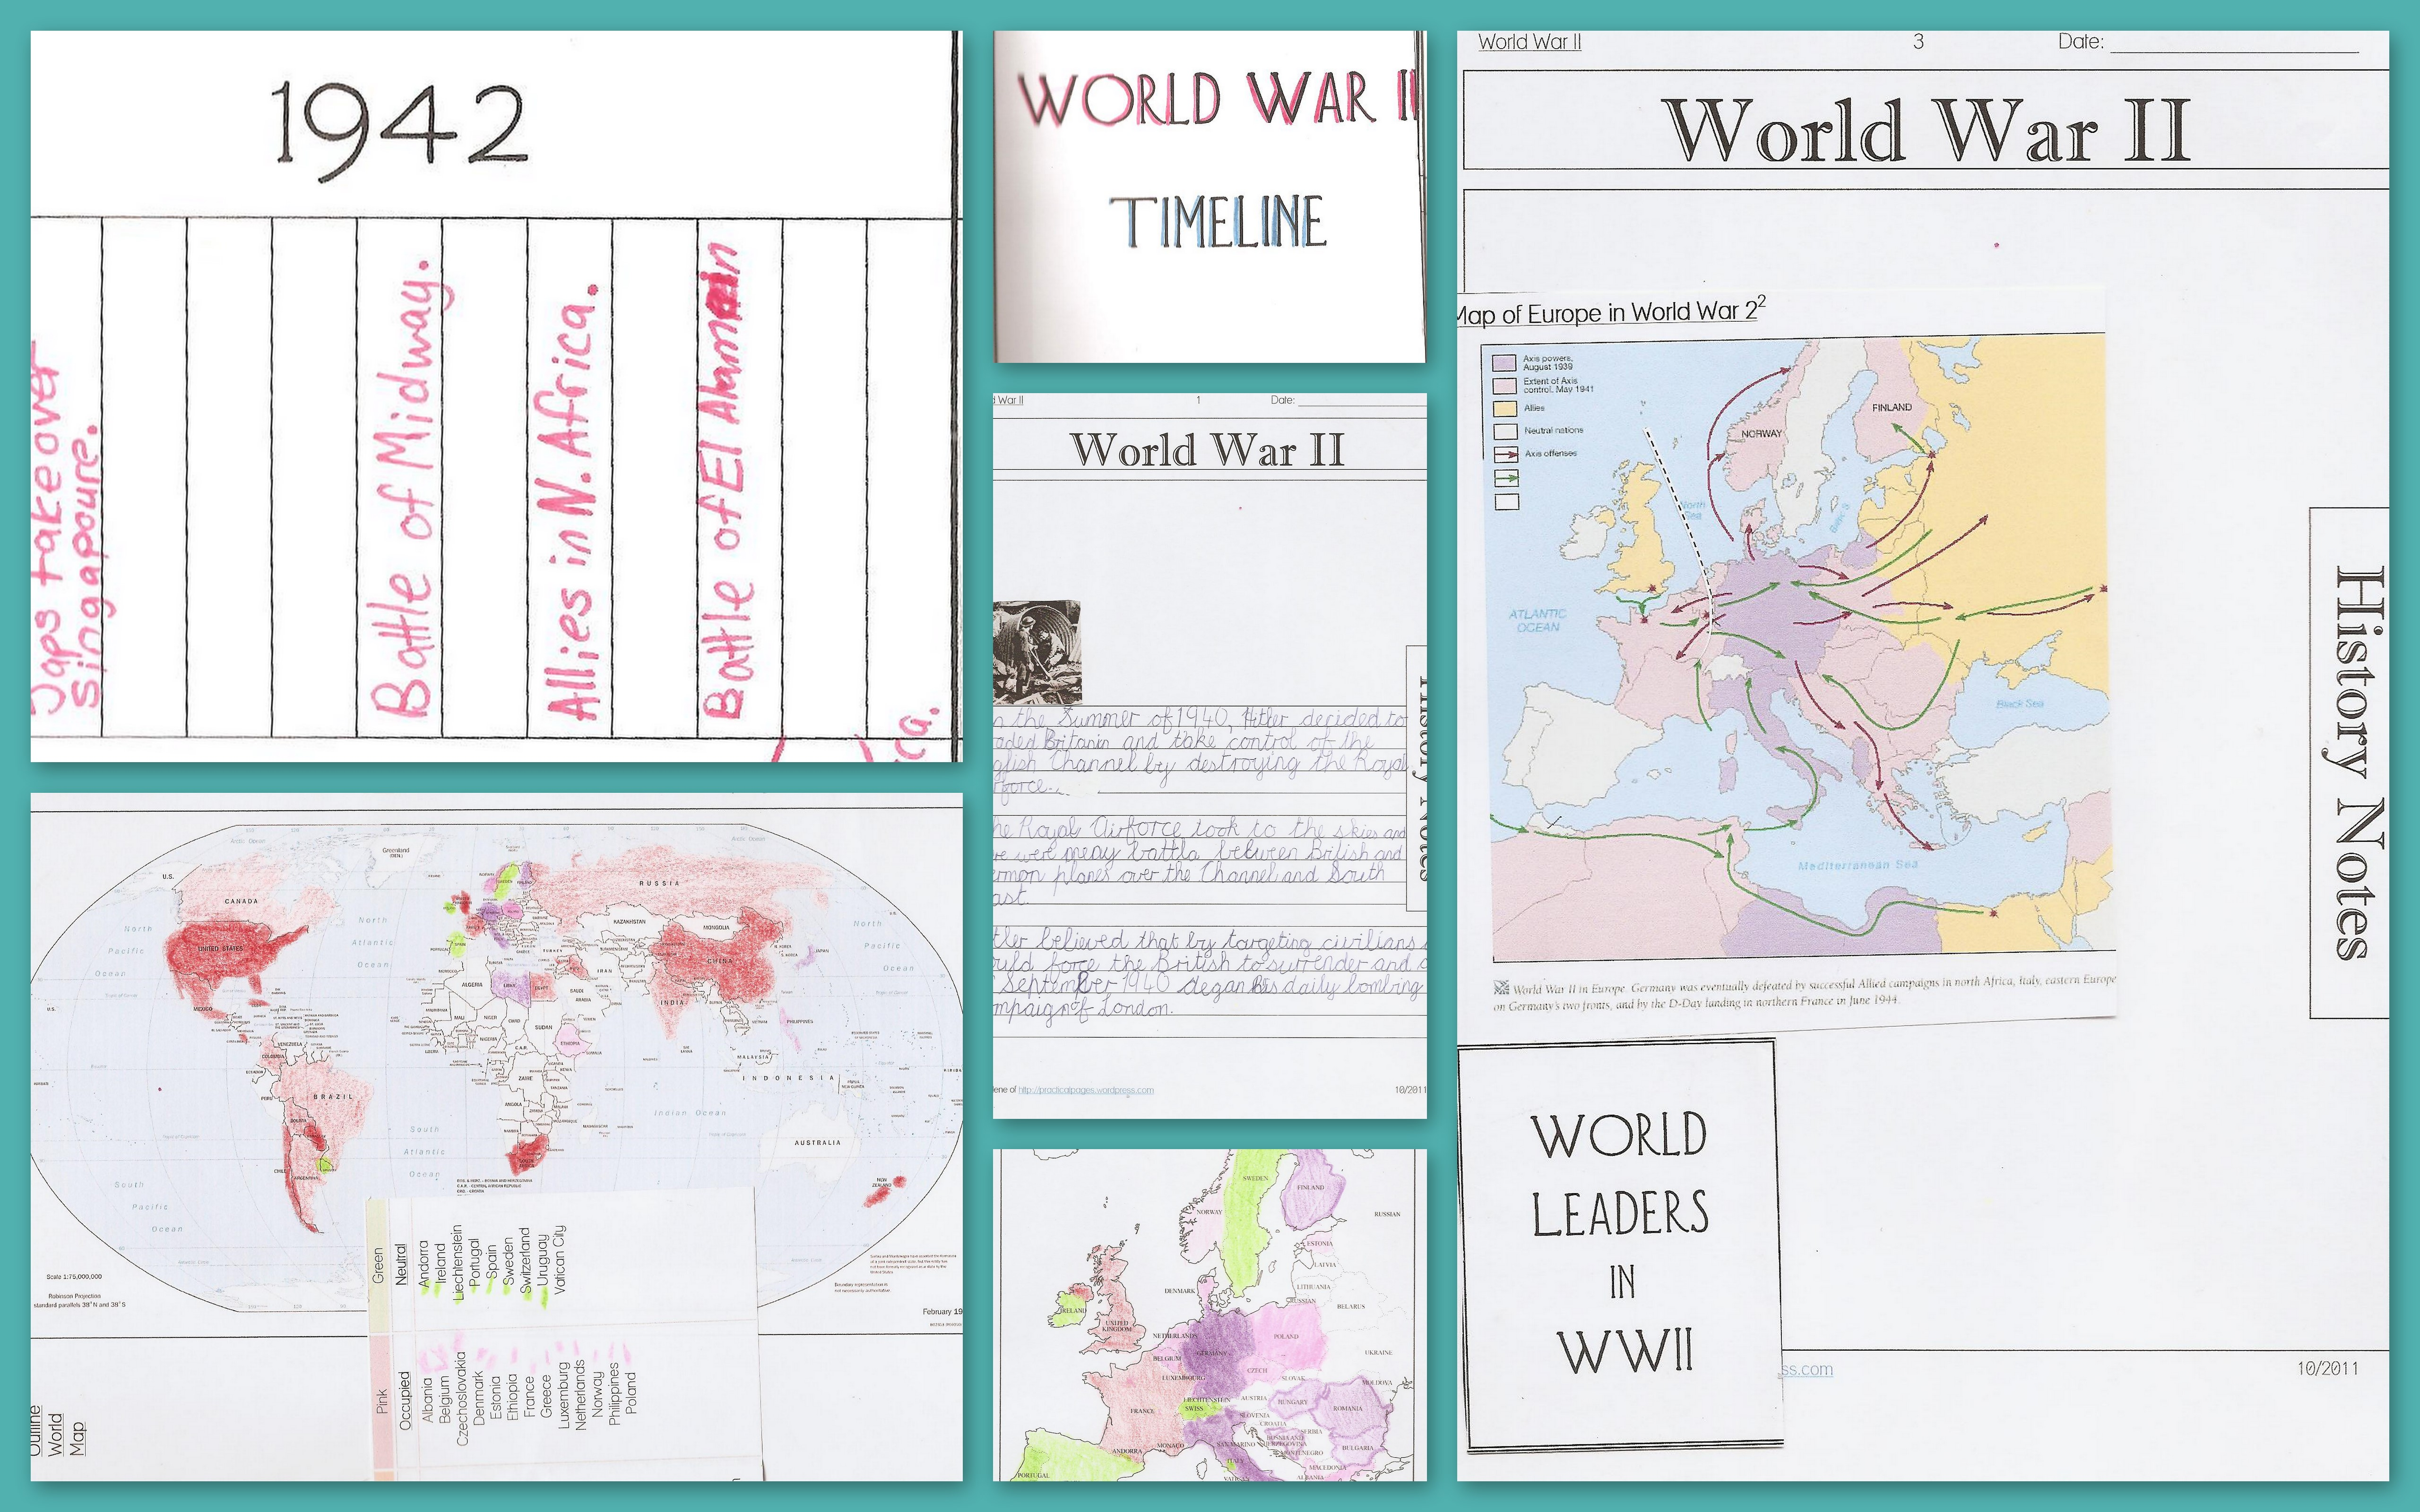 categorizing the different allies during world war i Ww2 allied powers questions including what are similarities and differences between world war i and 2 and who are allies of the united during world war ii.